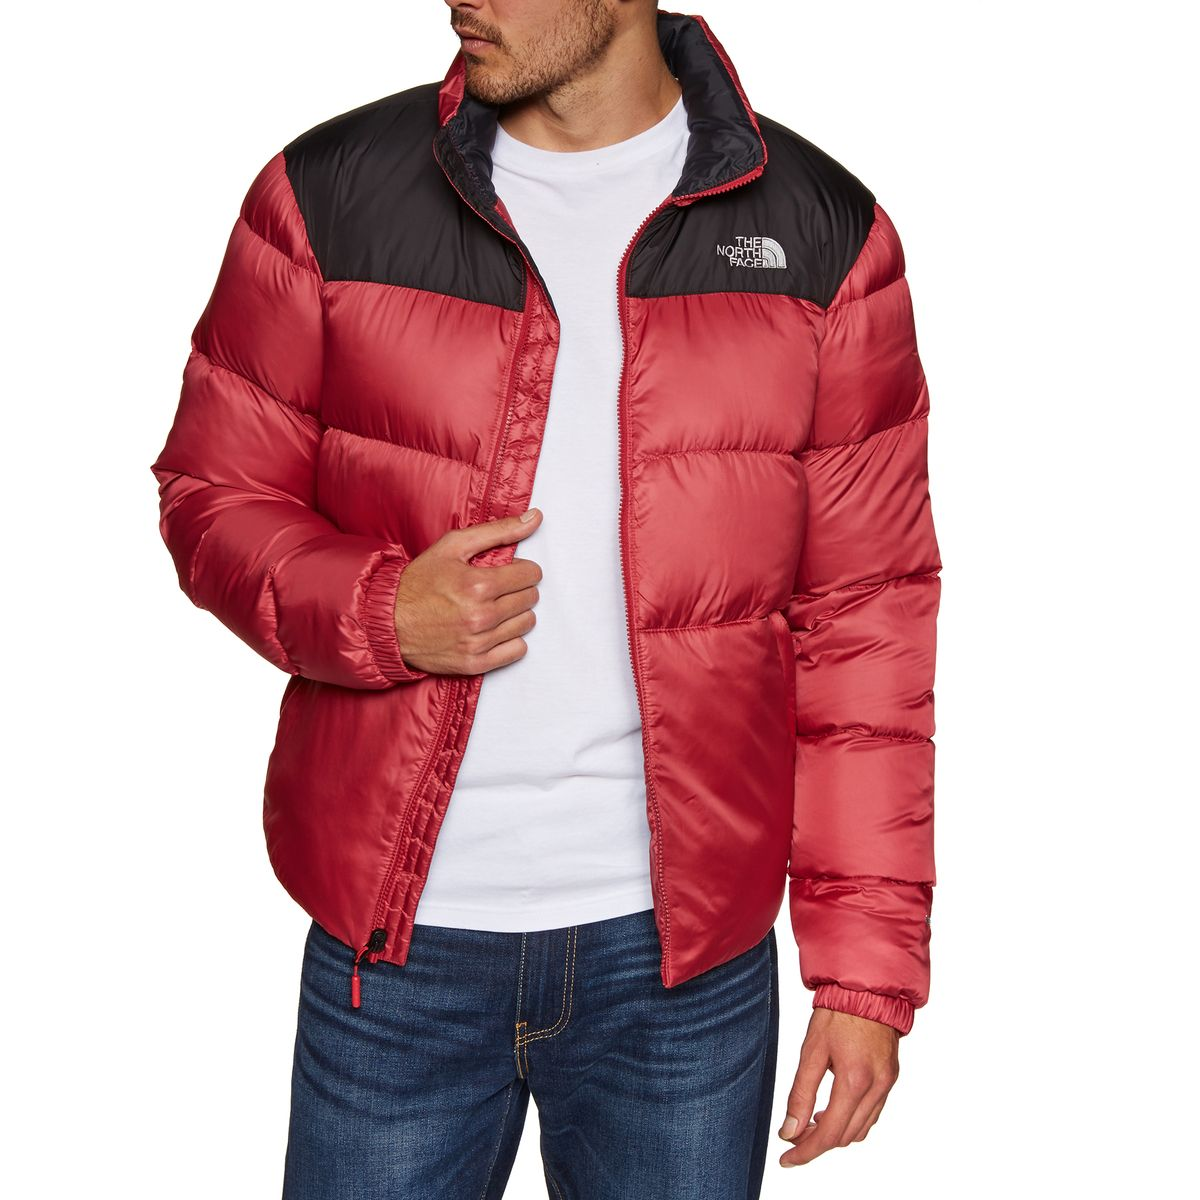 2ae419264a The North Face Nuptse Iii Mens Jacket Down - Rage Red Tnf Black All ...